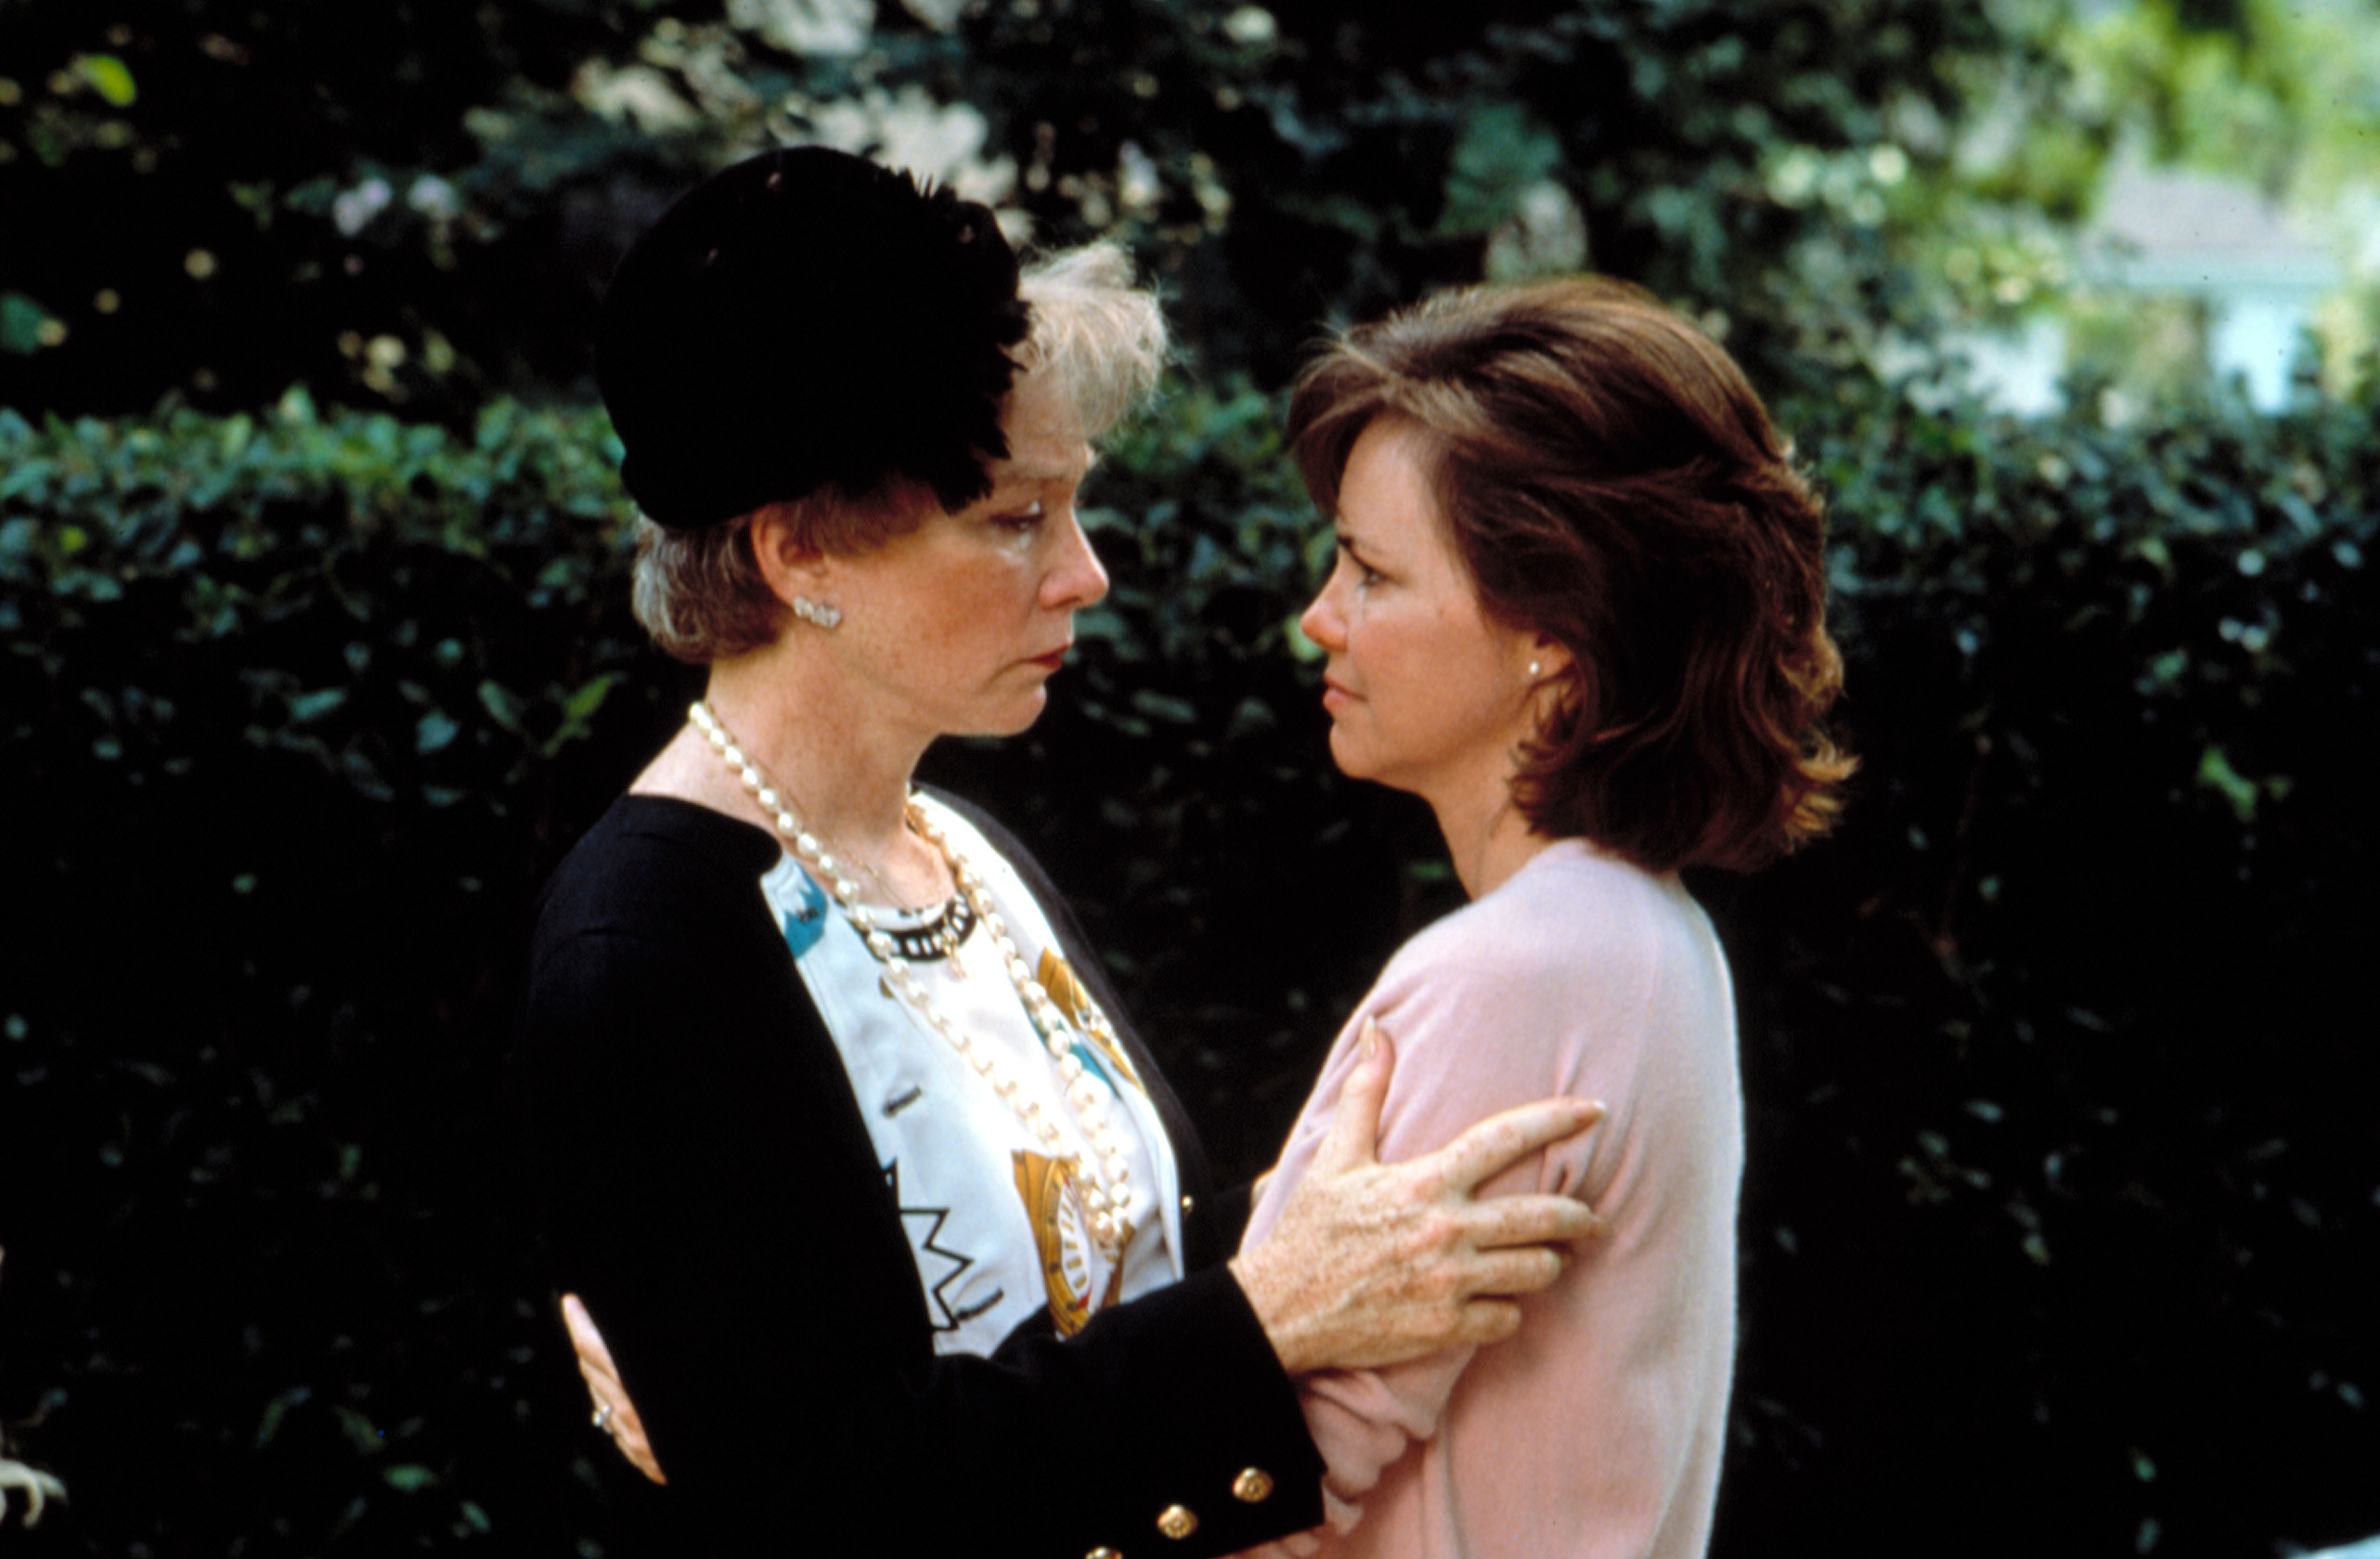 Shirley MacLaine and Sally Field embrace at a sad event